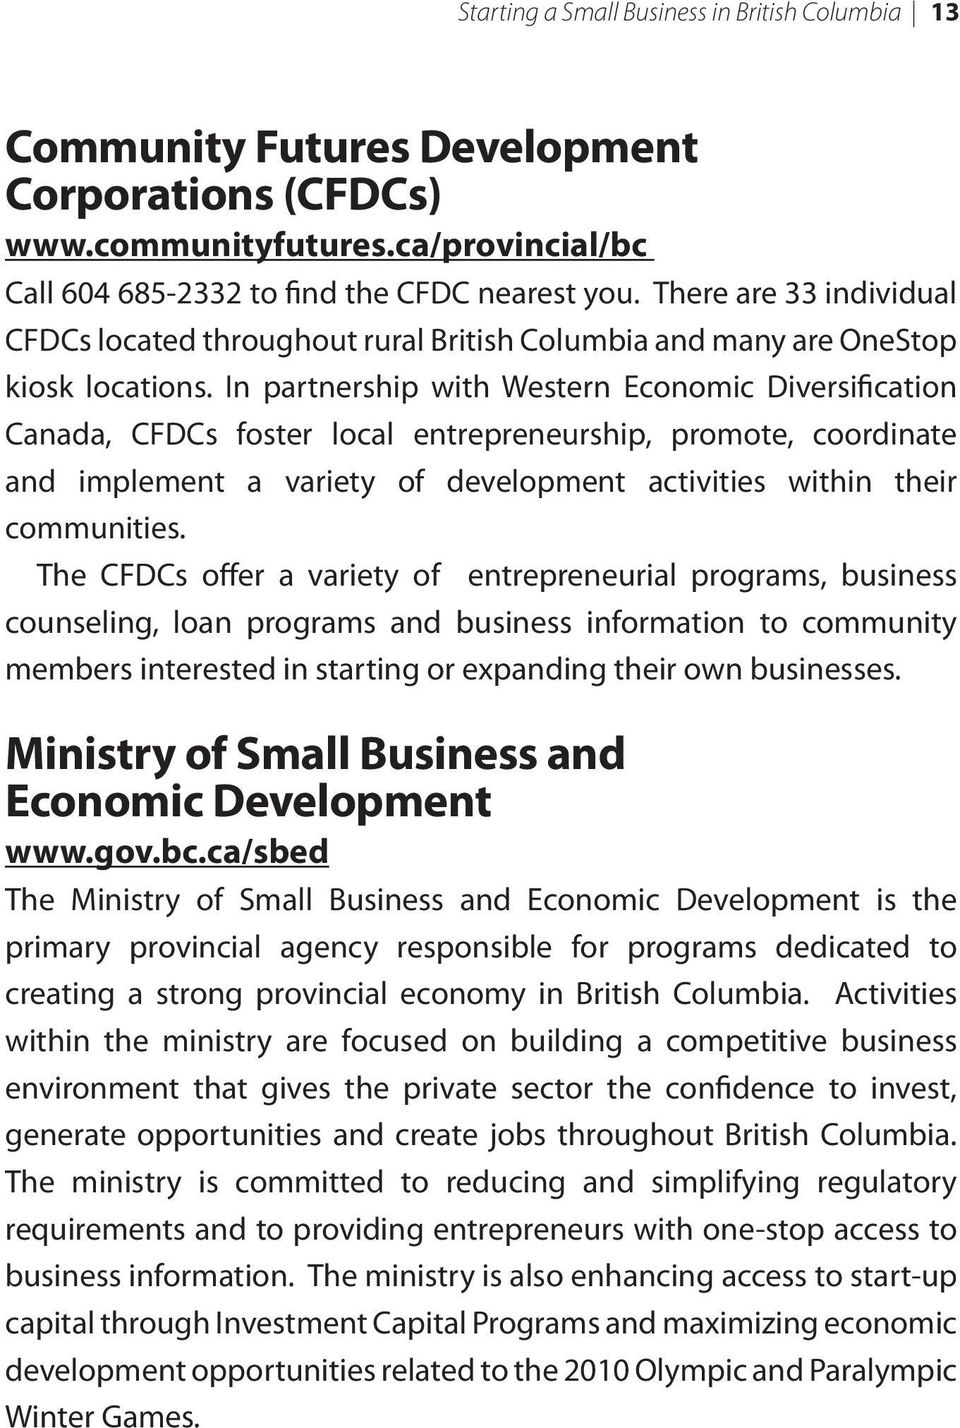 In partnership with Western Economic Diversification Canada, CFDCs foster local entrepreneurship, promote, coordinate and implement a variety of development activities within their communities.